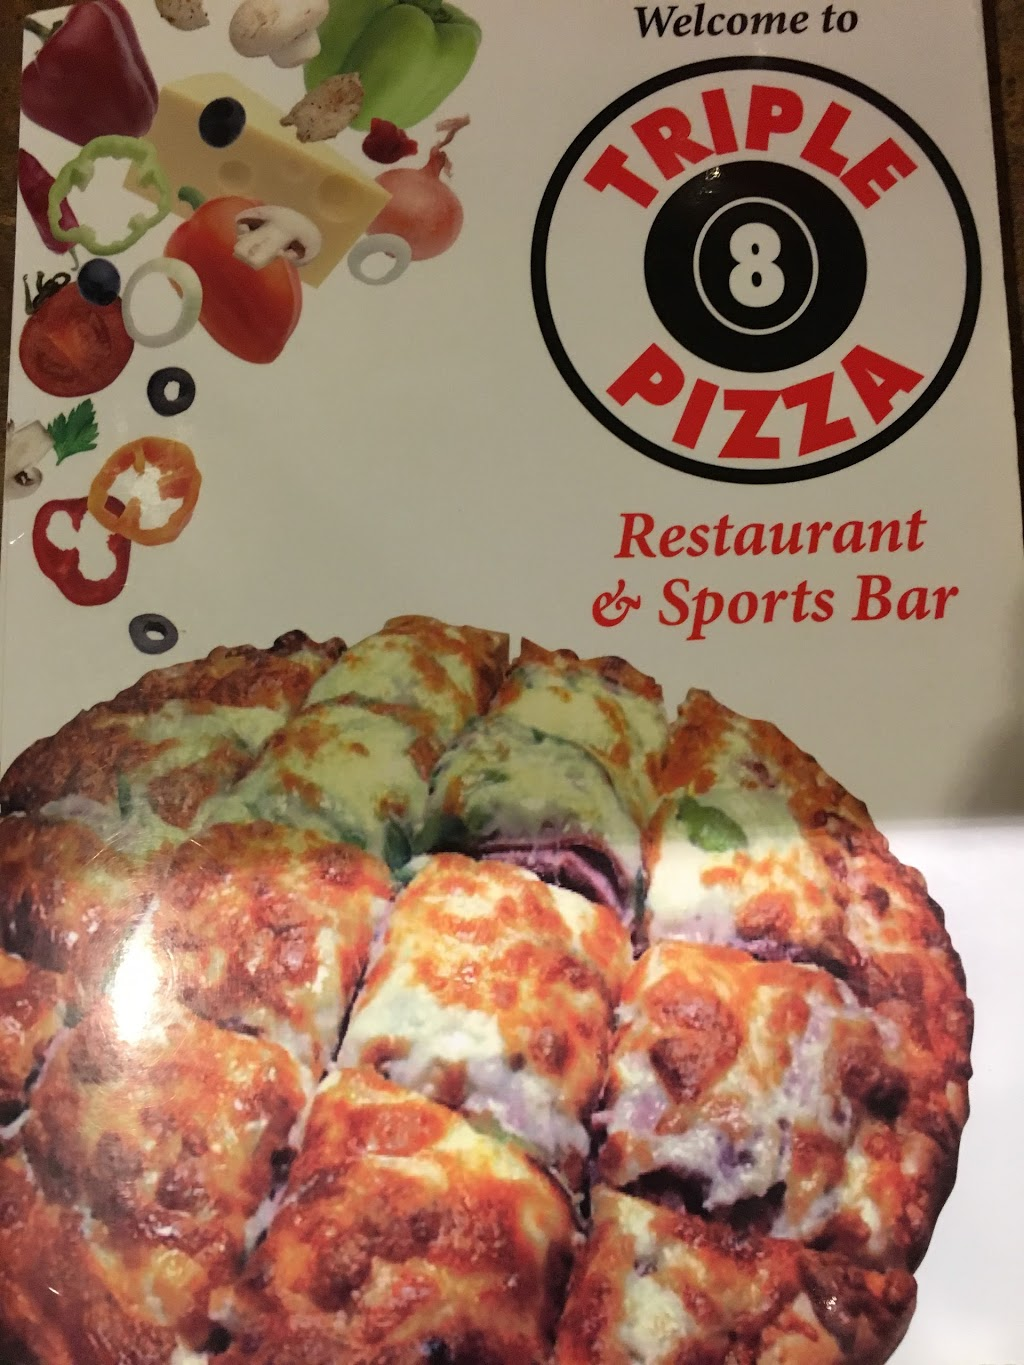 Triple 8 Pizza | restaurant | 708 Victoria Ave, Regina, SK S4N 0R1, Canada | 3063593888 OR +1 306-359-3888